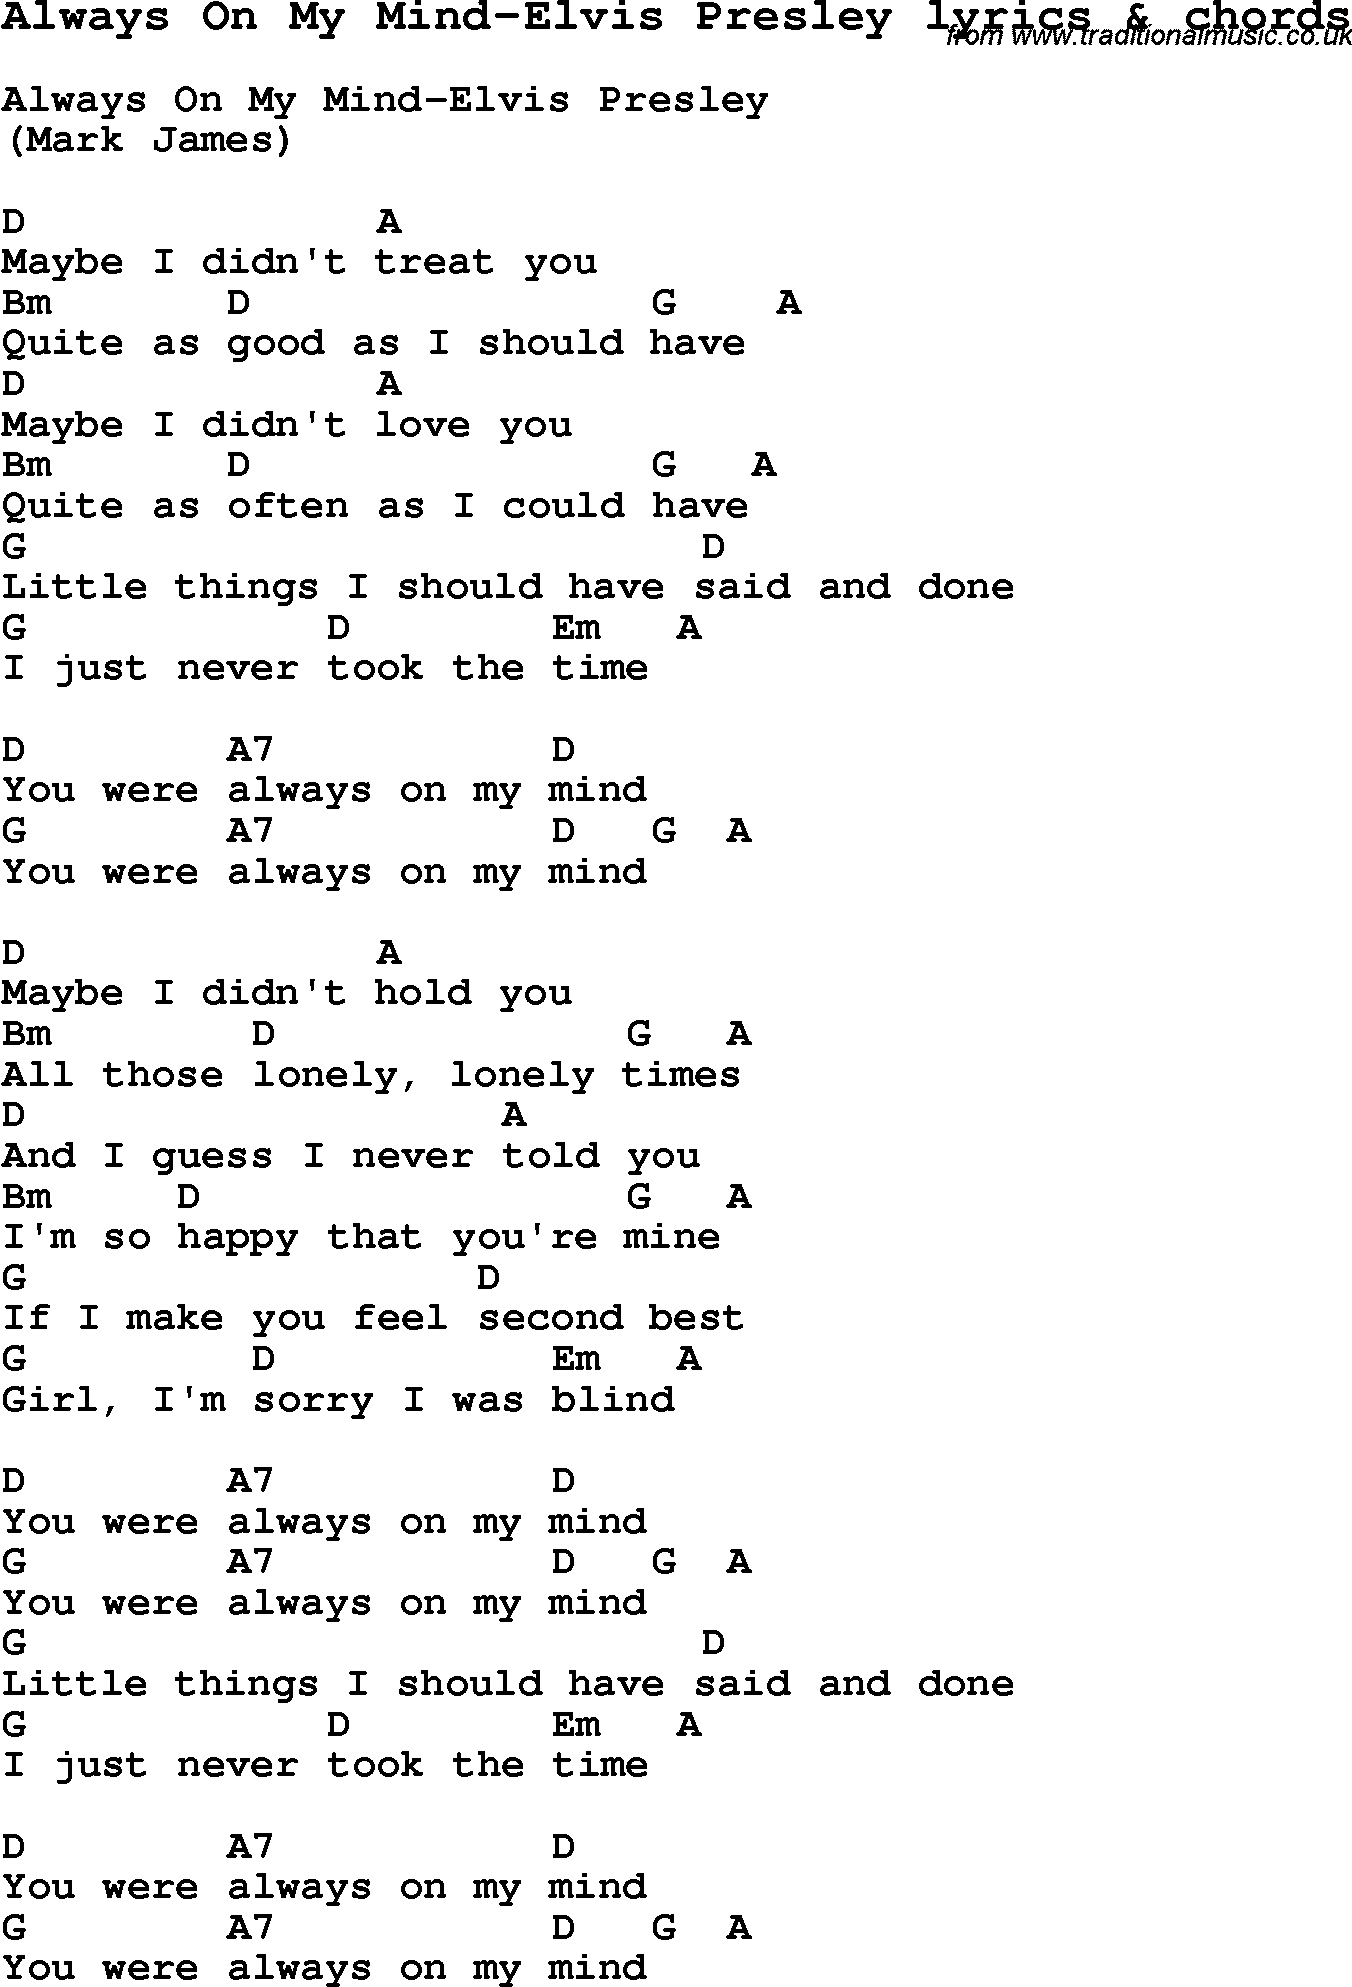 Love Song Lyrics For Always On My Mind Elvis Presley With Chords